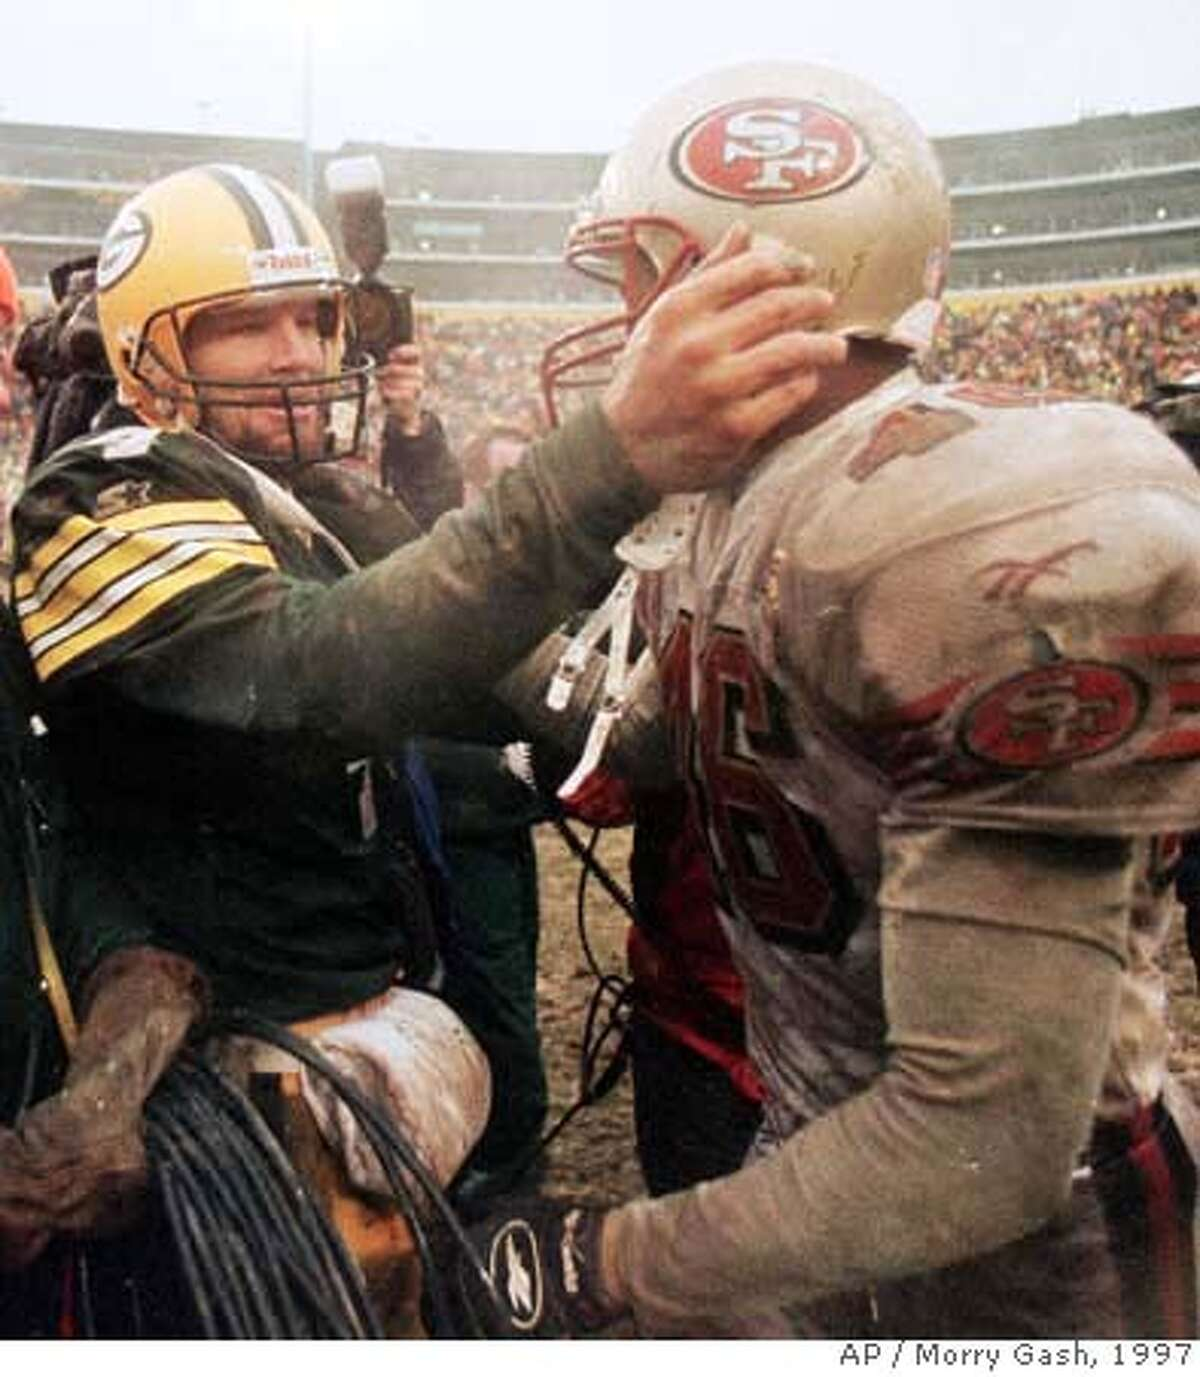 ###Live Caption:** FILE ** Green Bay Packers quarterback Brett Favre, left, talks with San Francisco 49ers safety Tim McDonald after Green Bay won 35-14 to advance to the NFC Conference finals in Green Bay, Wis., in this Jan. 4, 1997 file photo. Brett Favre has decided to retire from the NFL after 17 seasons. FOX Sports first reported Tuesday March 4, 2008 that the Green Bay Packers quarterback informed the team in the last few days.(AP Photo/Morry Gash)###Caption History:** FILE ** Green Bay Packers quarterback Brett Favre, left, talks with San Francisco 49ers safety Tim McDonald after Green Bay won 35-14 to advance to the NFC Conference finals in Green Bay, Wis., in this Jan. 4, 1997 file photo. Brett Favre has decided to retire from the NFL after 17 seasons. FOX Sports first reported Tuesday March 4, 2008 that the Green Bay Packers quarterback informed the team in the last few days.(AP Photo/Morry Gash)###Notes:Brett Favre###Special Instructions:JAN. 4, 1997 FILE PHOTO EFE OUT